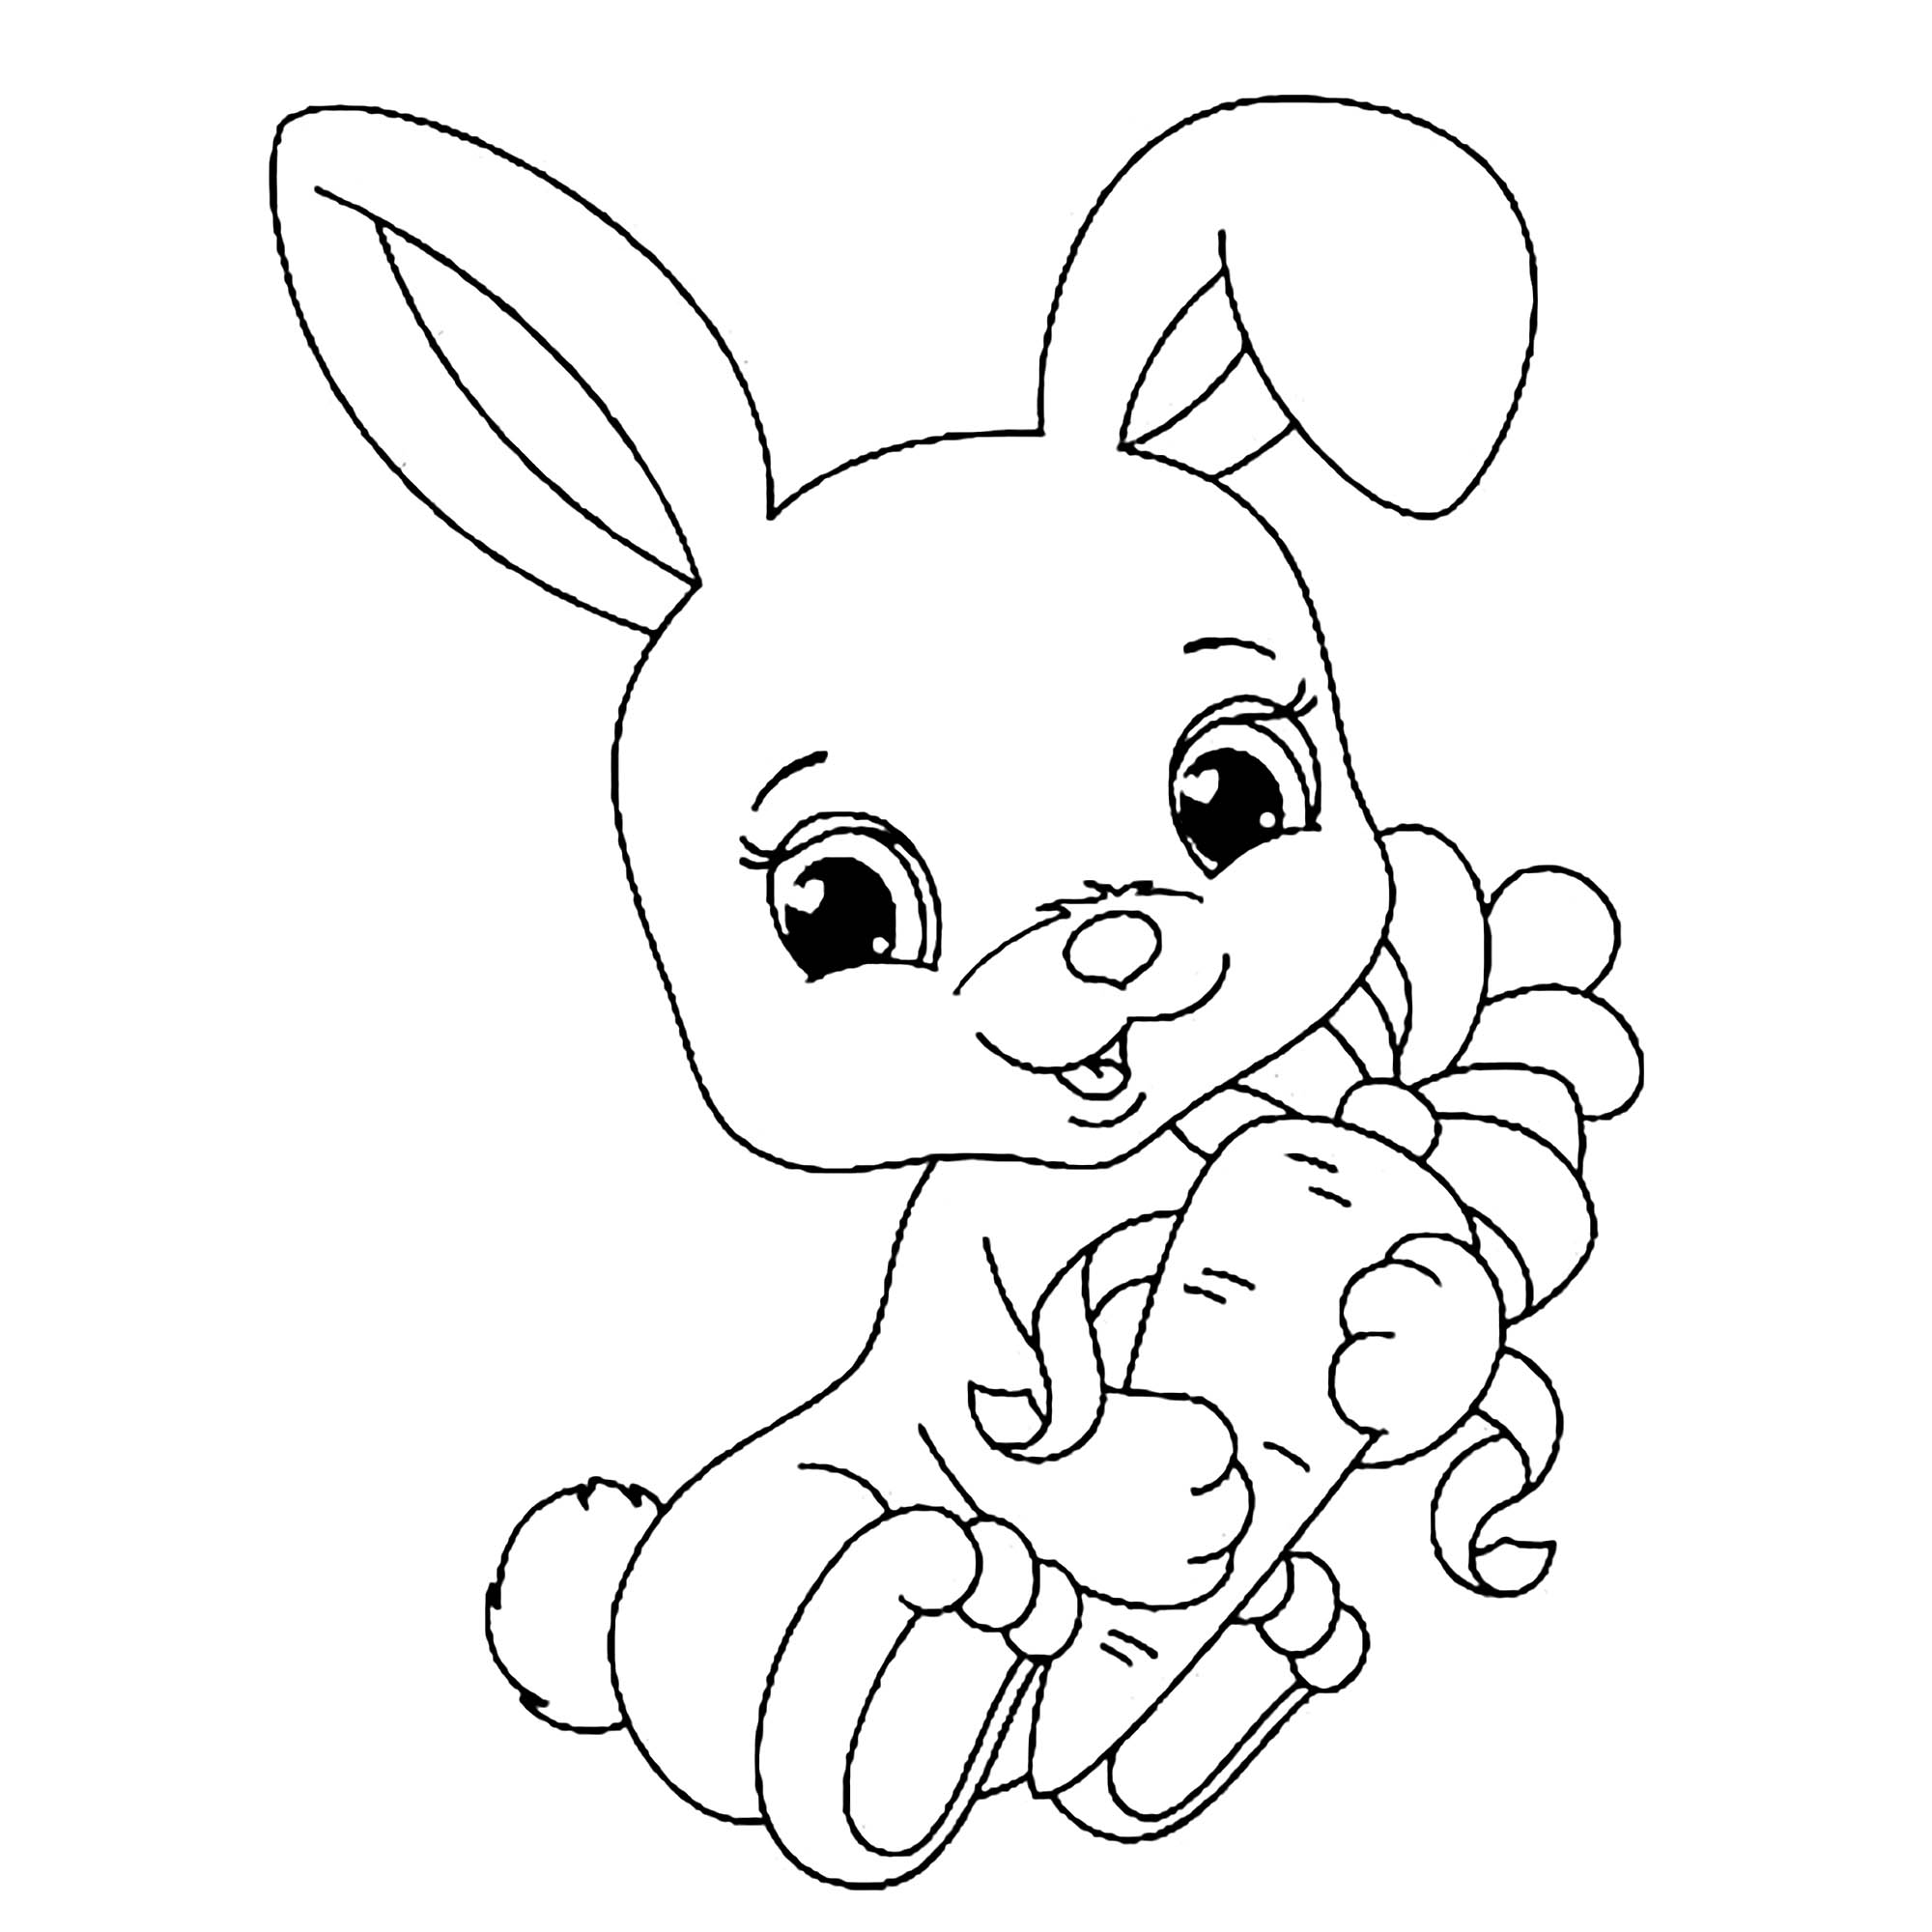 bunny coloring book rabbit free to color for kids rabbit kids coloring pages coloring bunny book